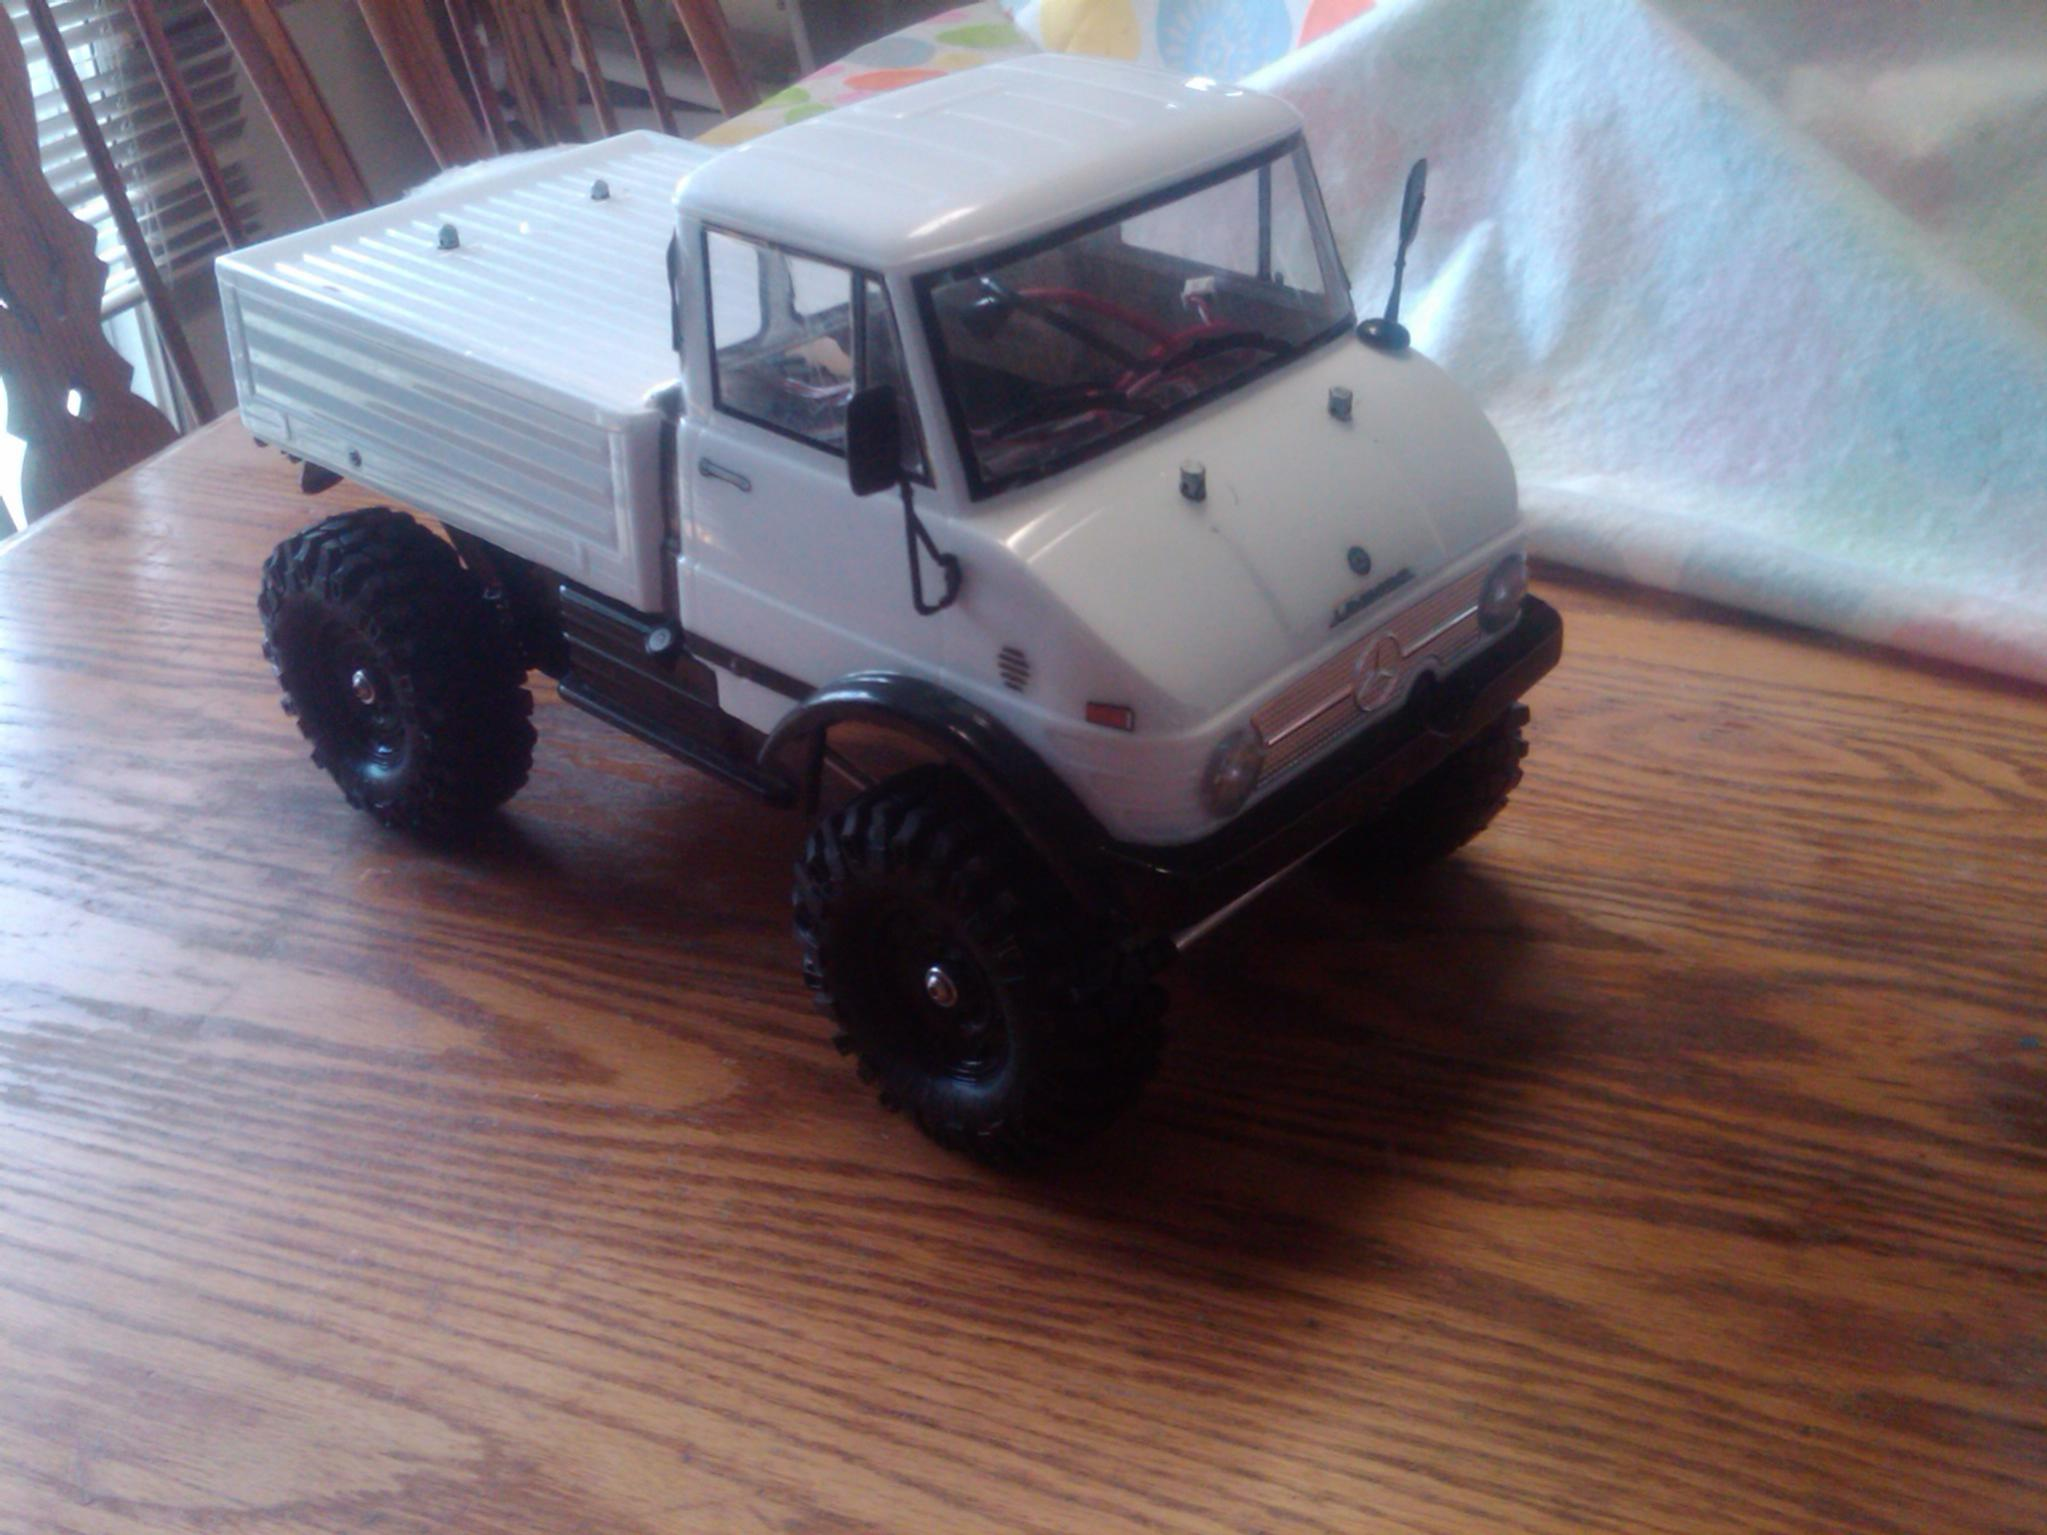 Unimog For Sale >> rc scale crawler fully custom made 1.9 unimog rtr for sale or trade - R/C Tech Forums